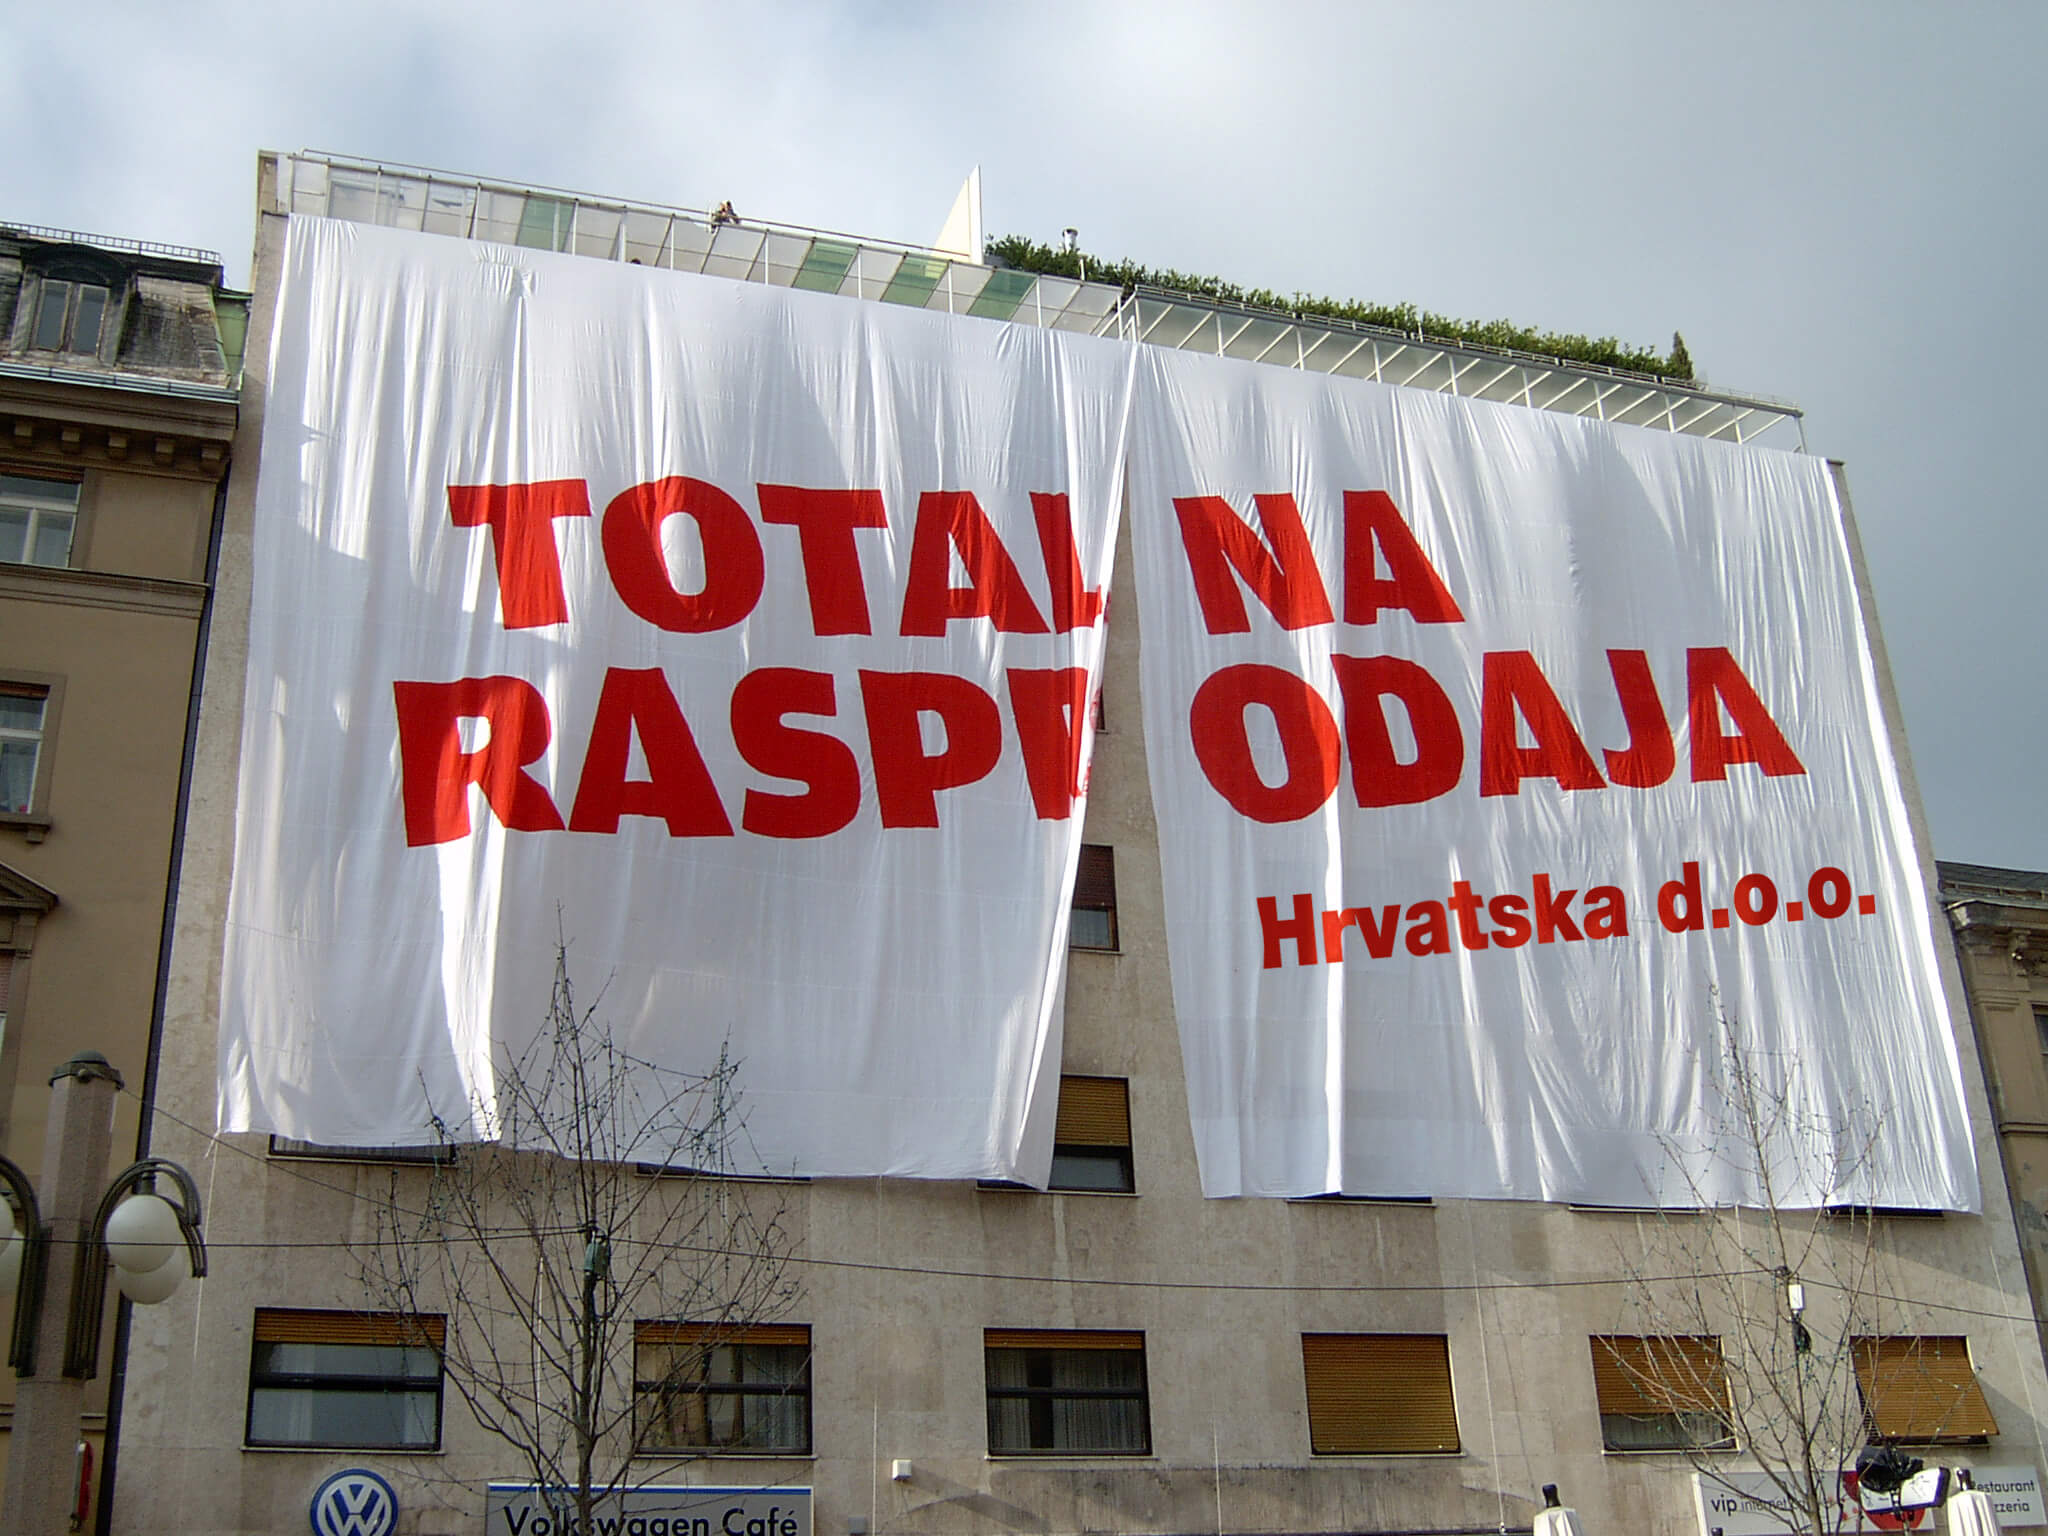 'Total sellout, Croatia, LTD.', a poster by Pravo na Grad released from the newly built shopping mall in Varšavska  - originally it was signed 'Zagreb, LTD.', photo by Pravo na Grad